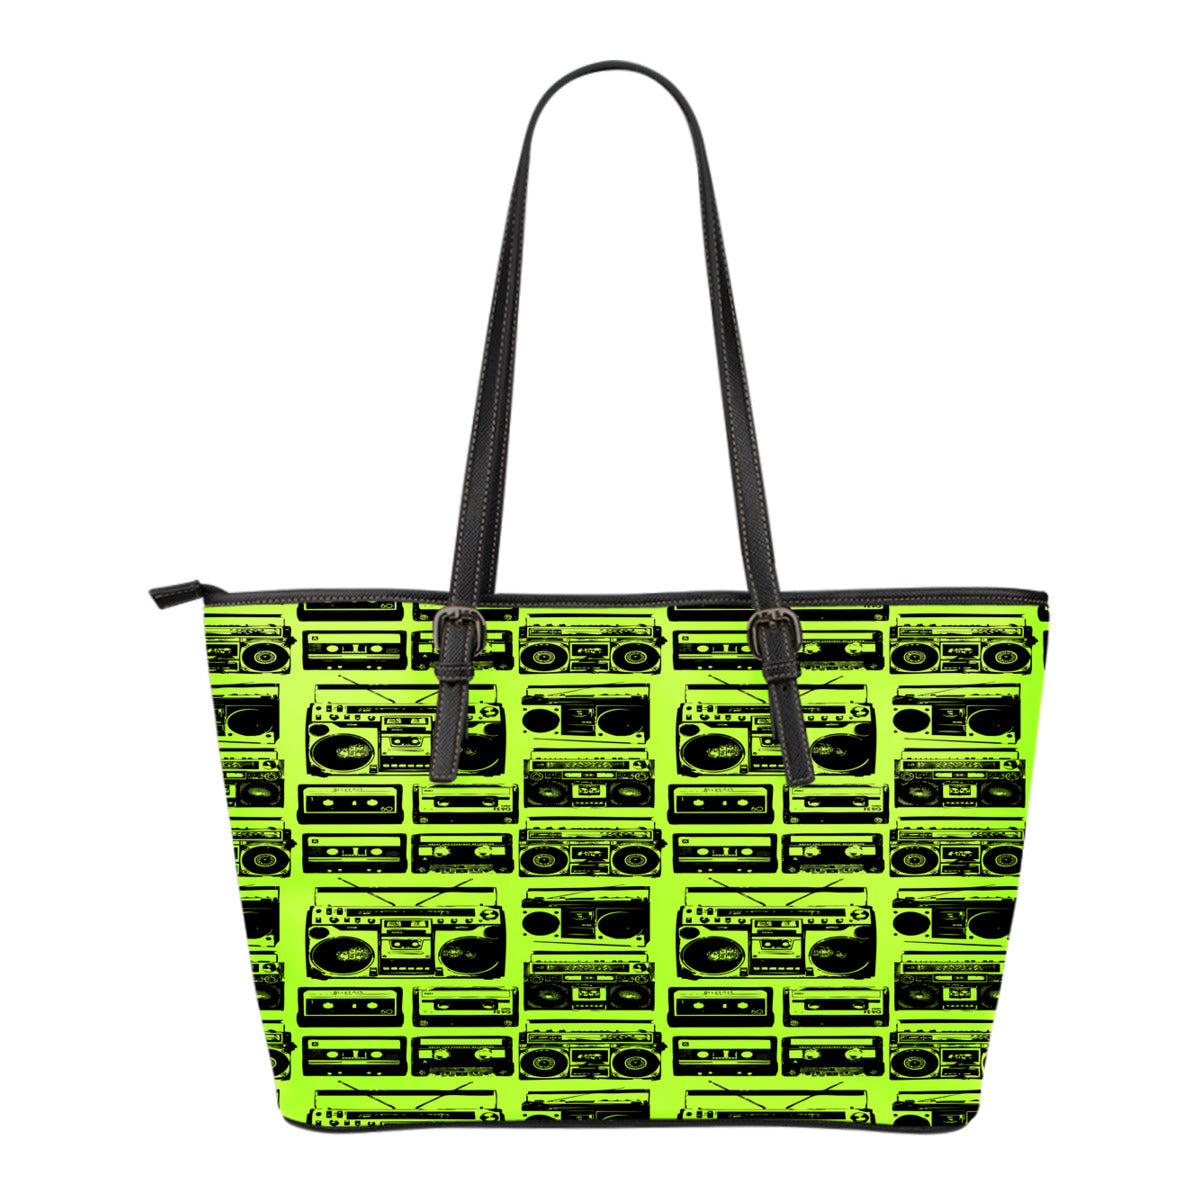 80s Boombox Themed Design C5 Women Small Leather Tote Bag